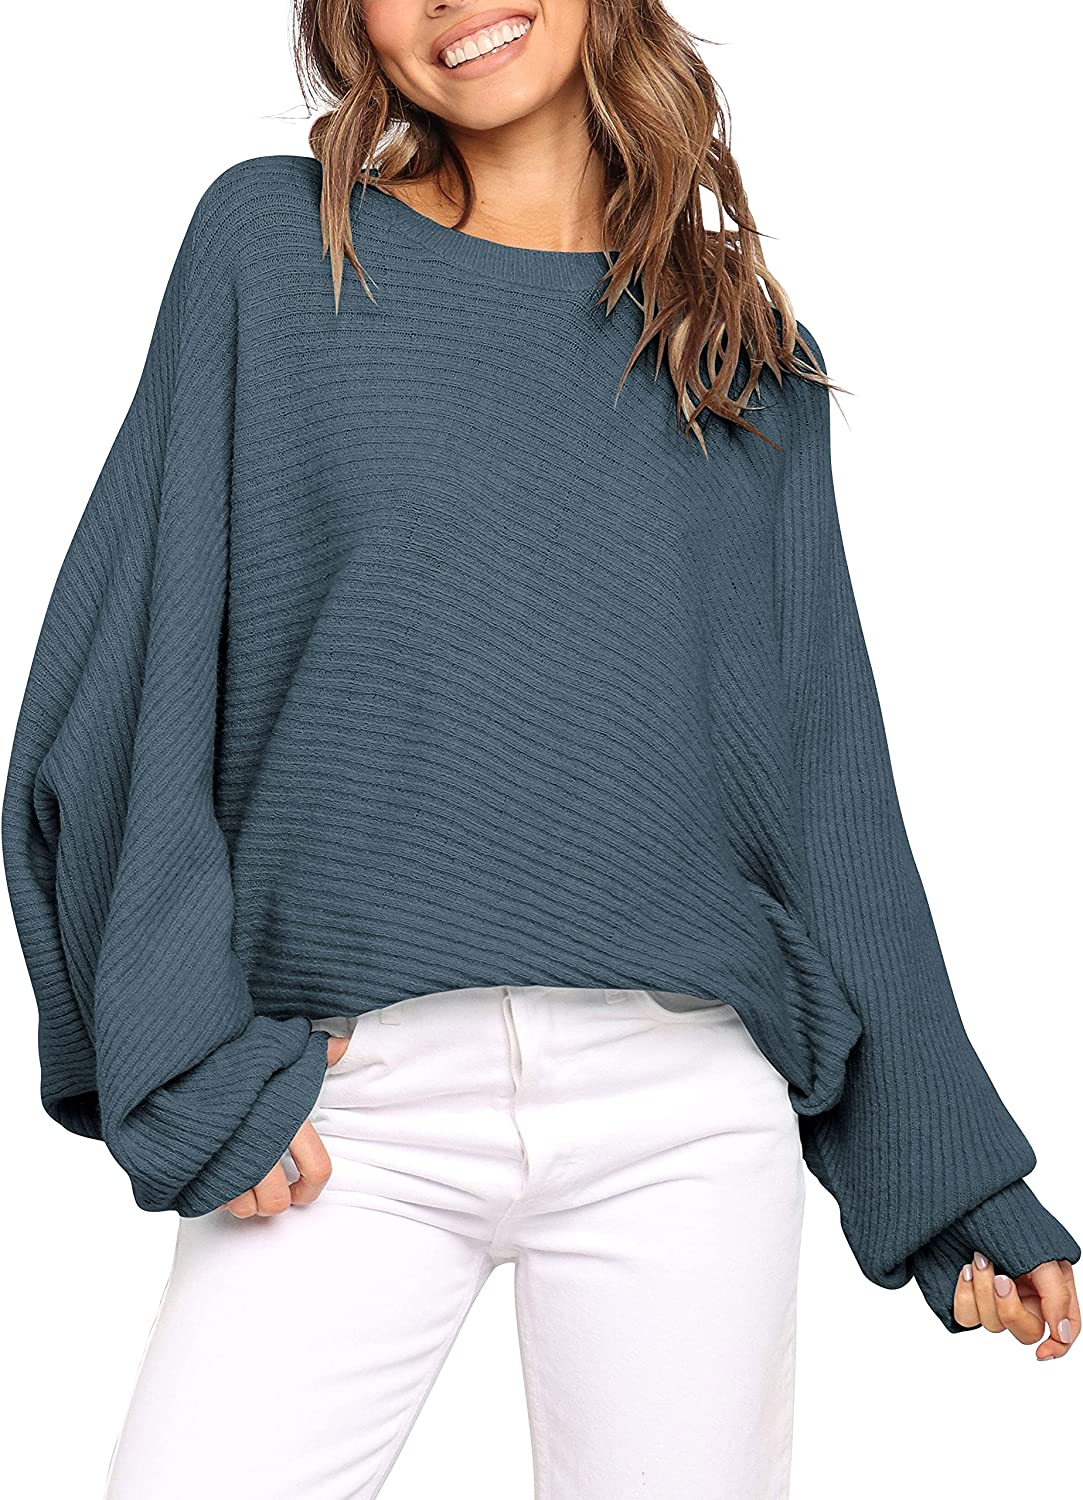 ANRABESS Women's Oversized Crewneck Sweater Batwing Puff Long Sleeve Cable Slouchy Pullover Jumper Tops